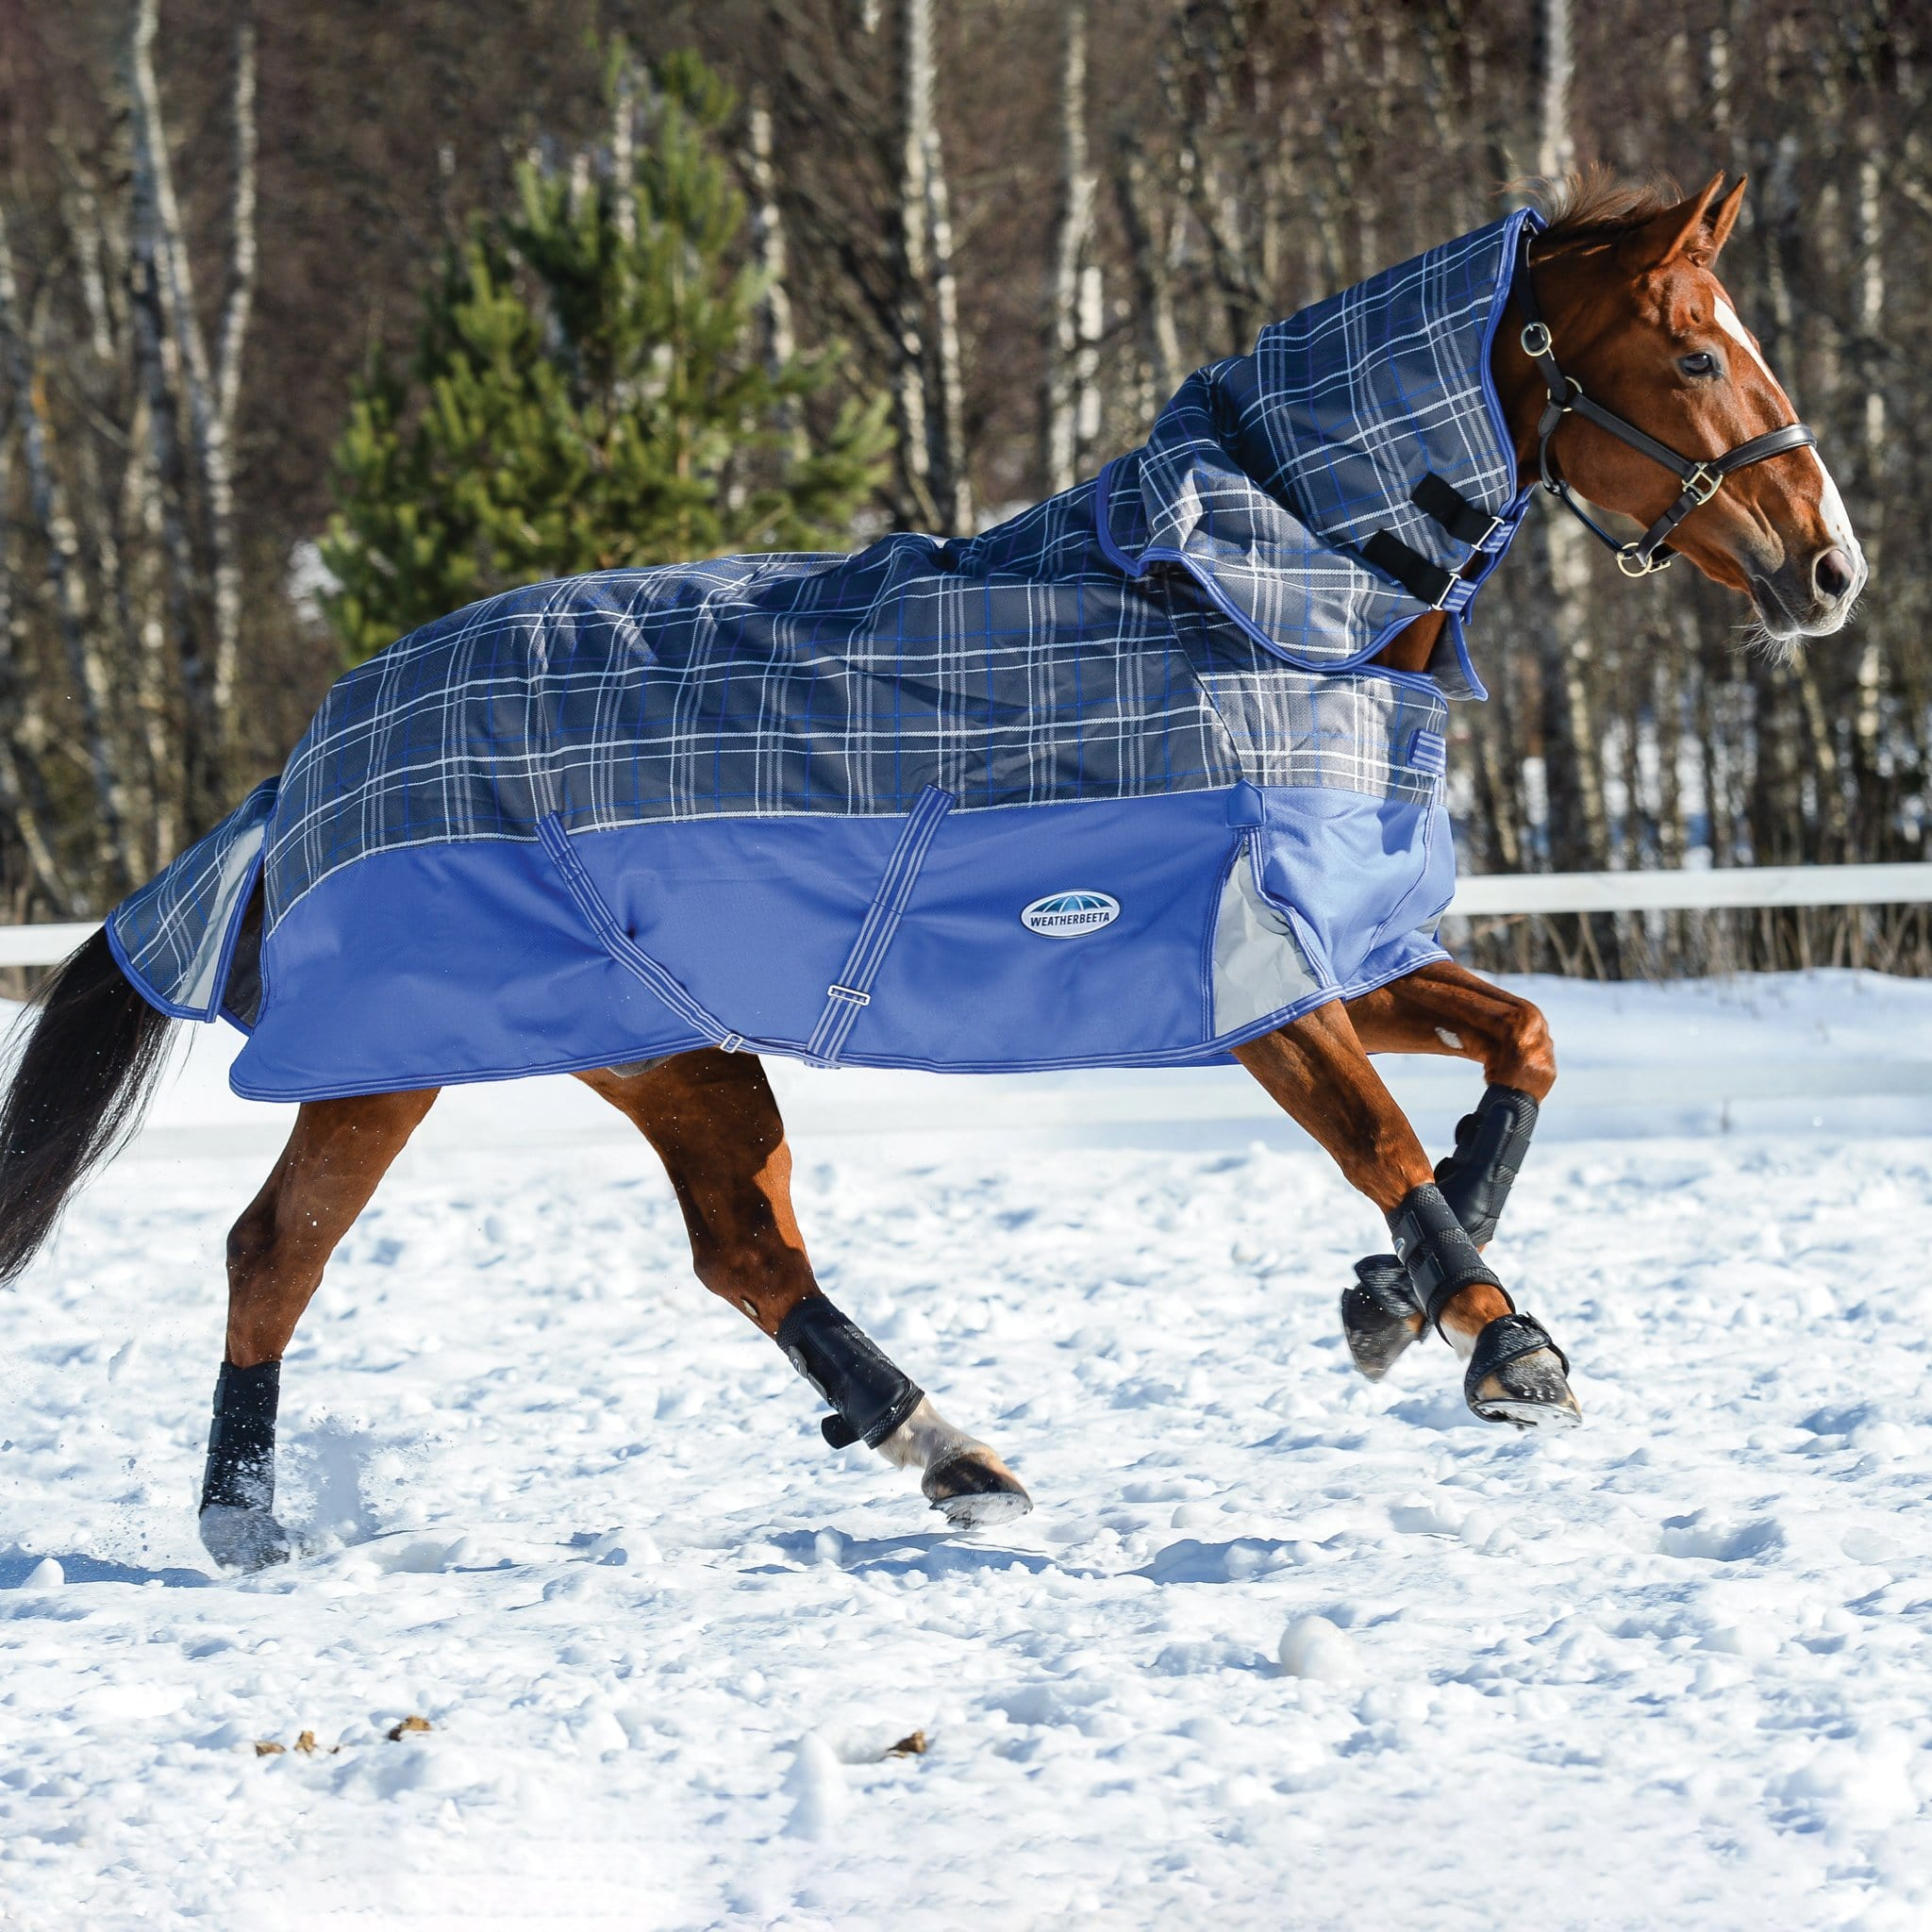 Weatherbeeta ComFiTec Premier Free Heavyweight 360g Detachable Neck Turnout Rug Grey Plaid 801037 Horse In Snow From Side